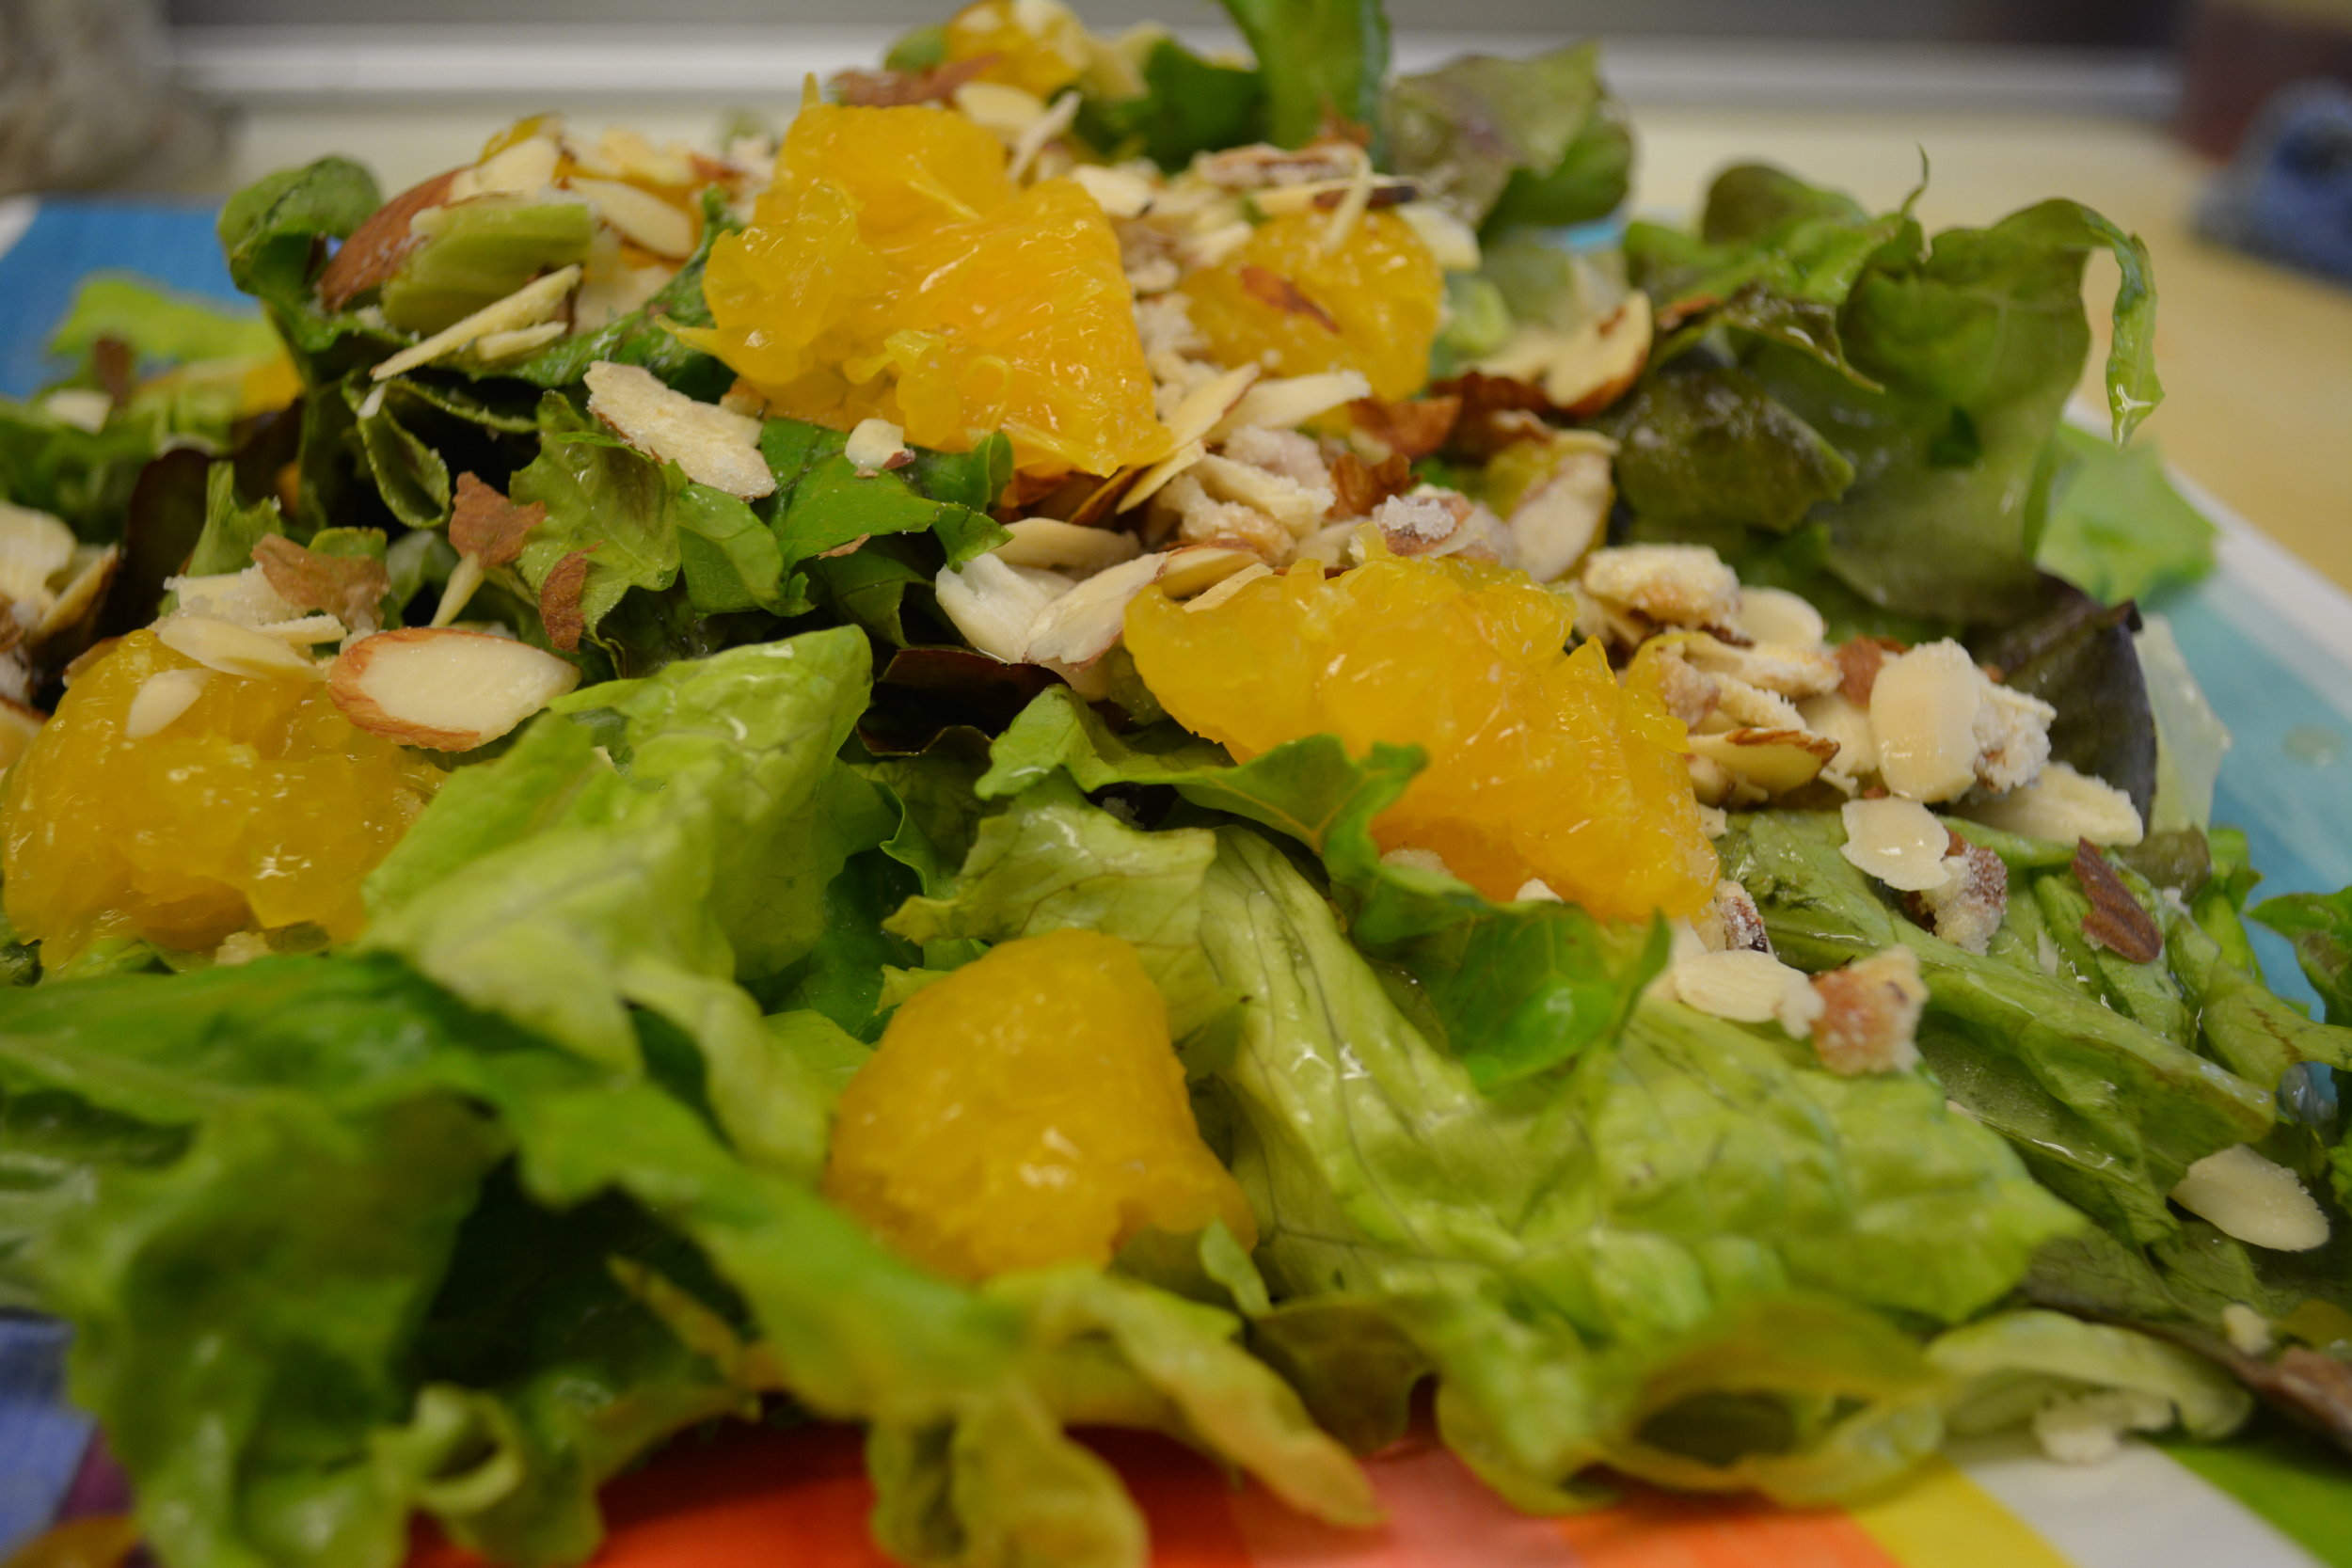 CAFE - Red and Green leafy lettuce, mandarin oranges, and carmelized almonds,topped off with our homemade sweet & sour red wine vinaigrette dressing